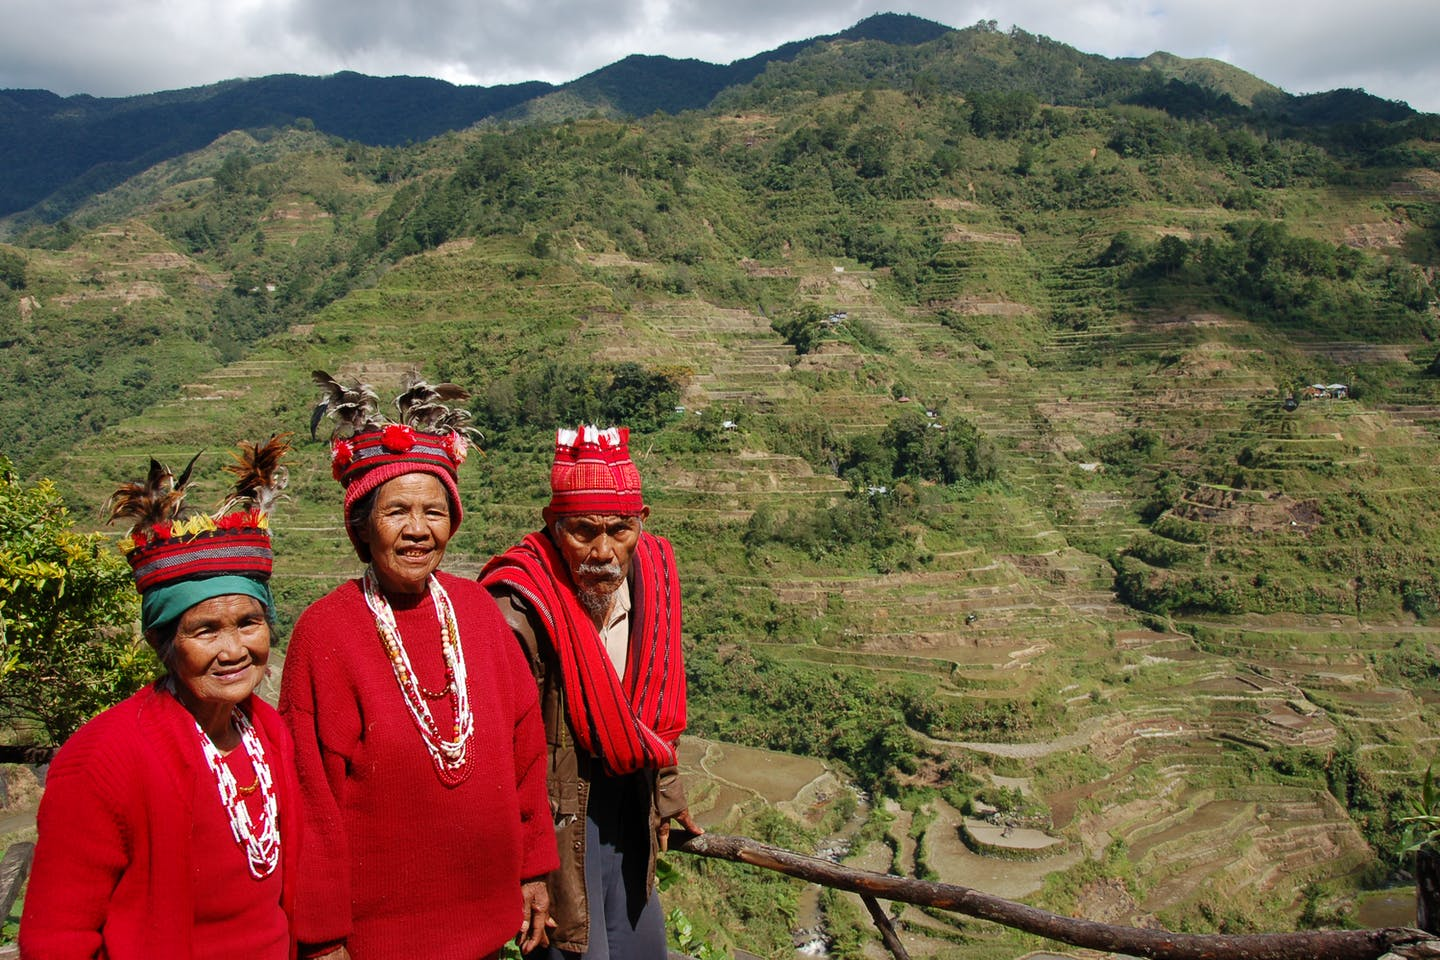 Igorot people in Banaue, Philippines